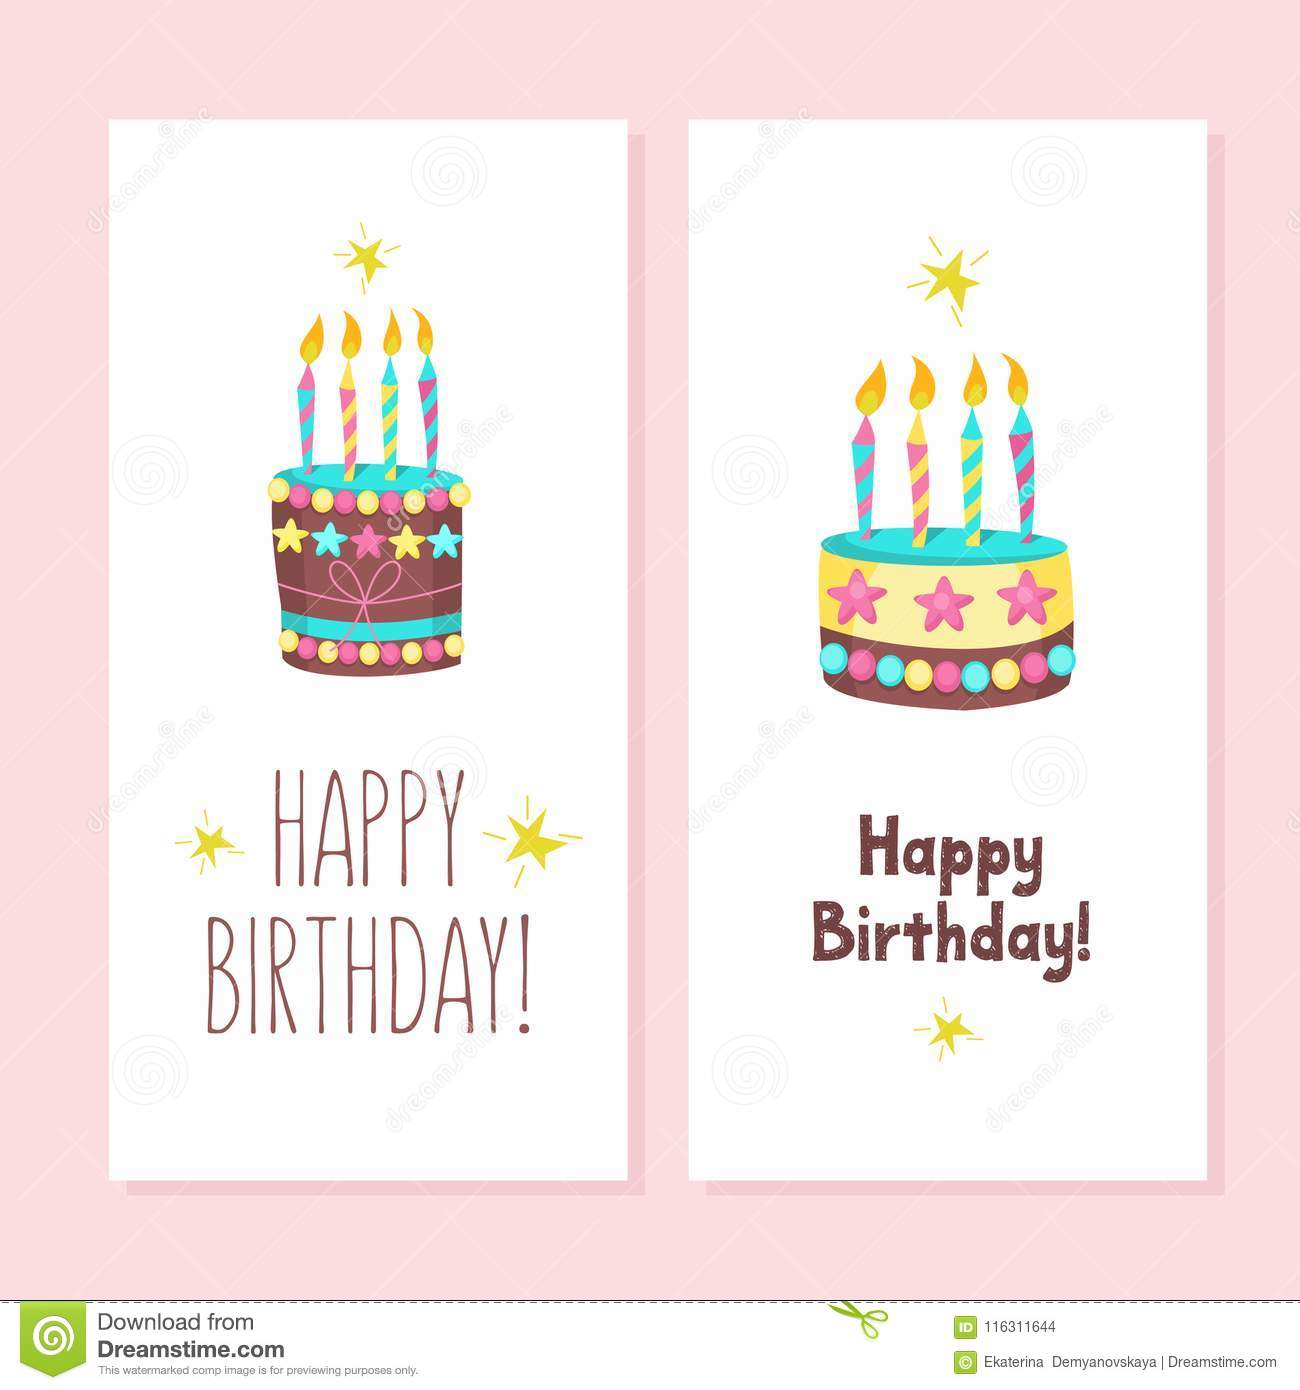 Happy Birthday The Cakes And Pastries Stock Photo Image Of Bakery